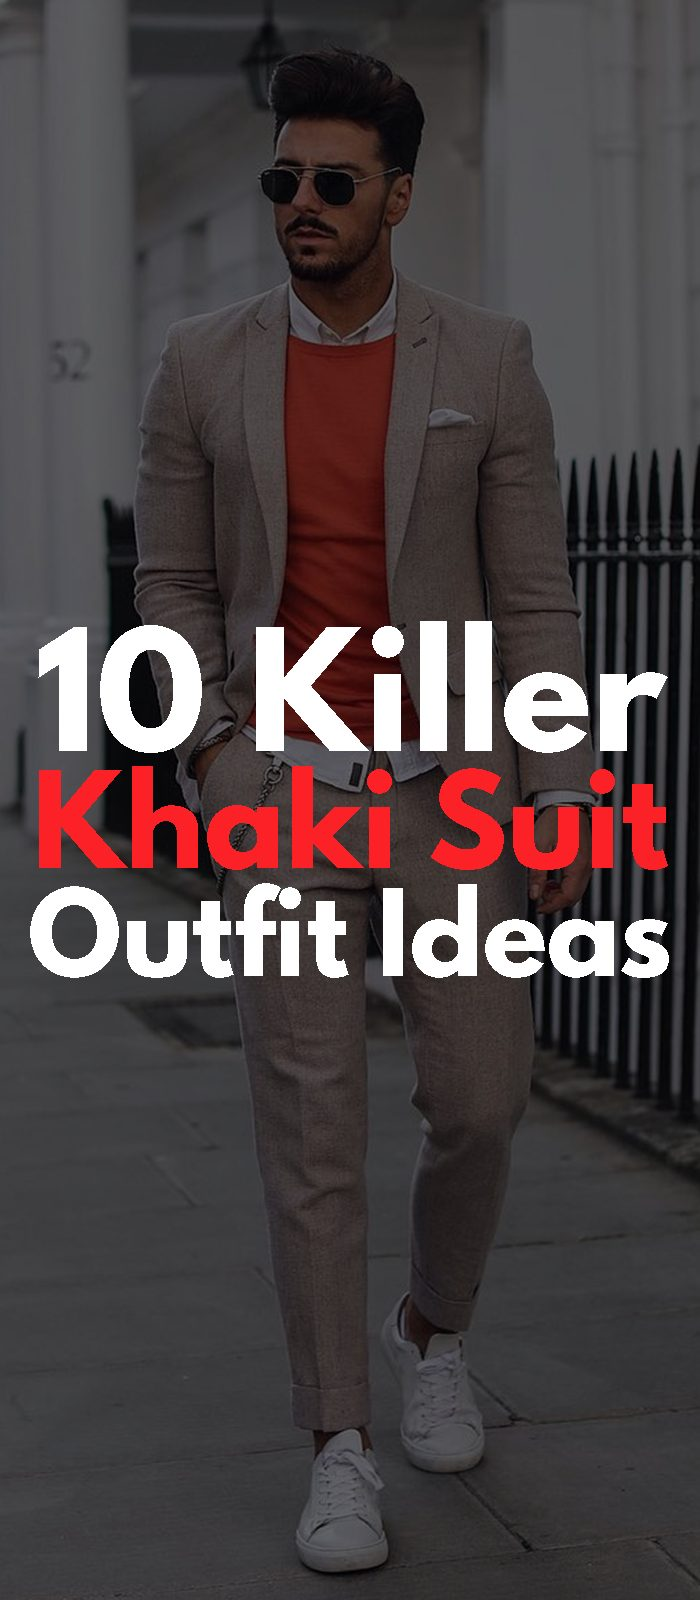 10 Killer Khaki Suit Outfit Ideas!